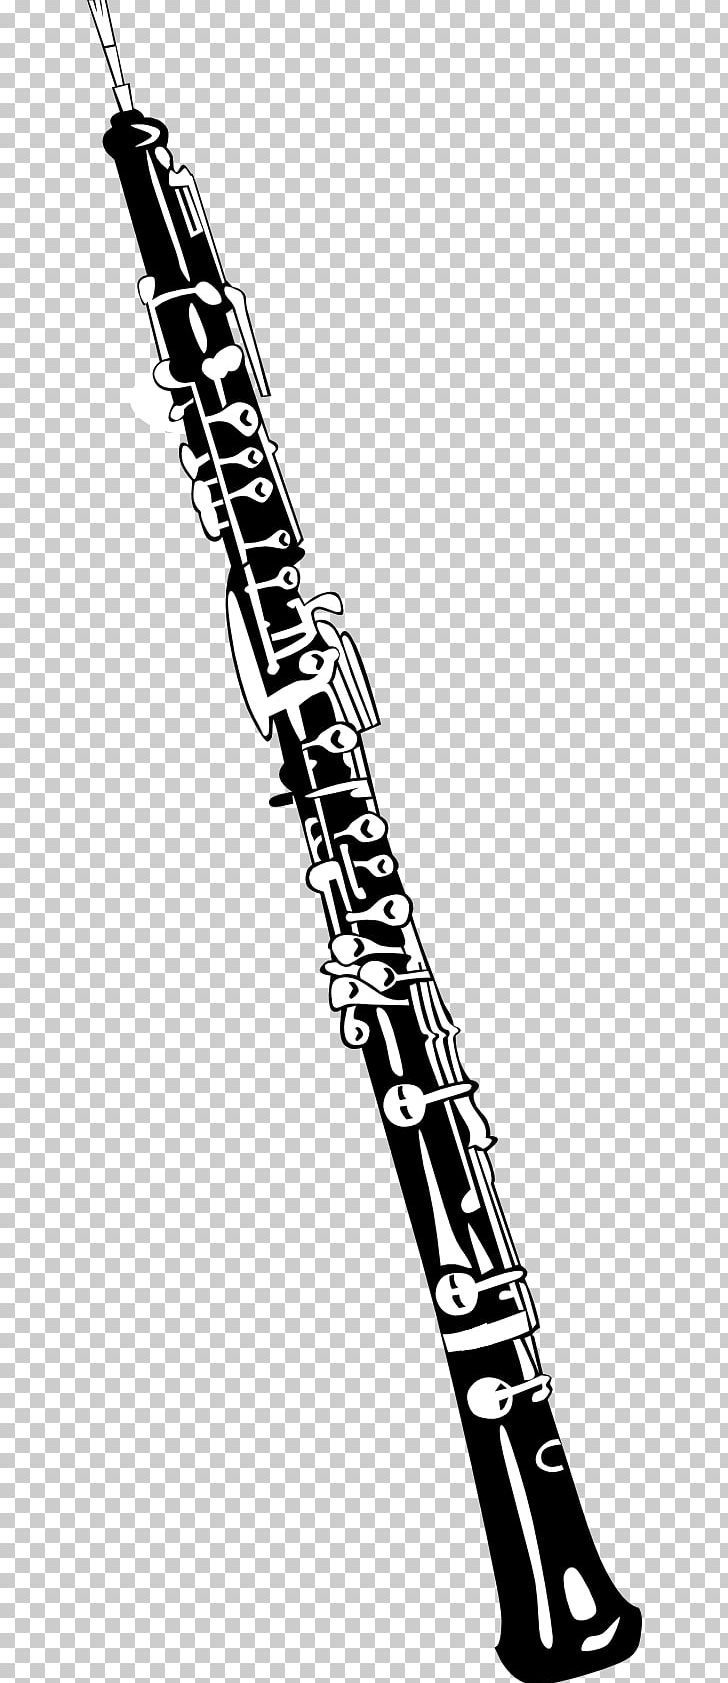 Musical instruments clipart black and white oboe banner black and white Oboe Musical Instruments Wind Instrument PNG, Clipart, Bassoon ... banner black and white